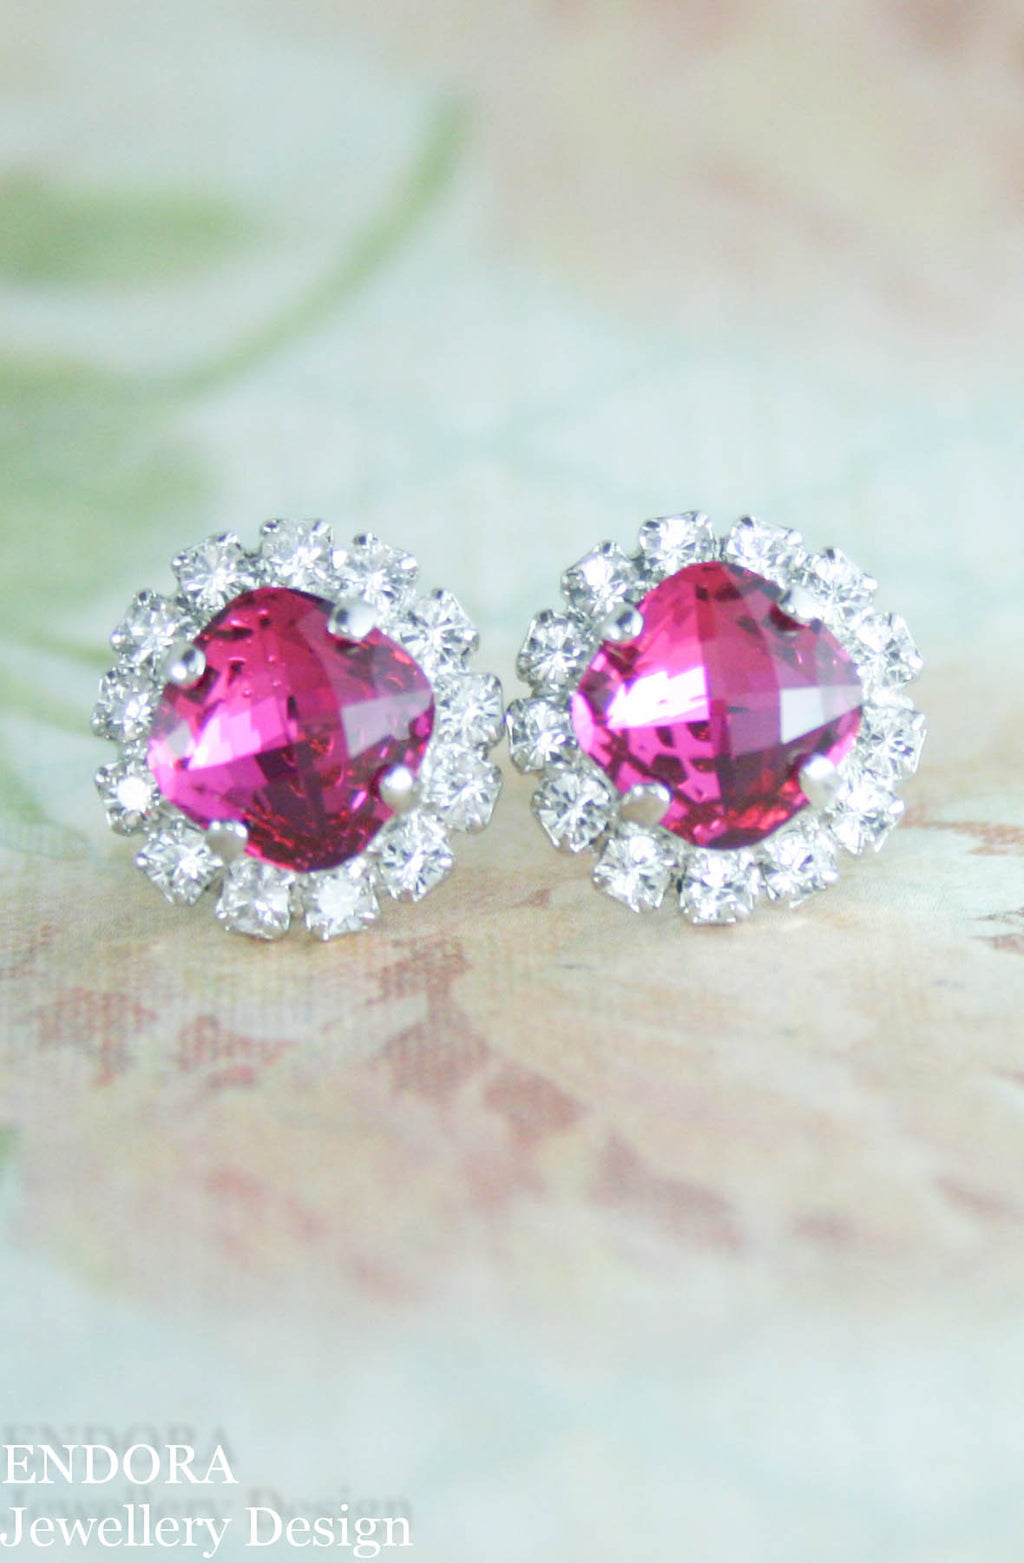 Jessica Halo earrings | Swarovski crystal | 8mm Fuchsia and clear crystal accent